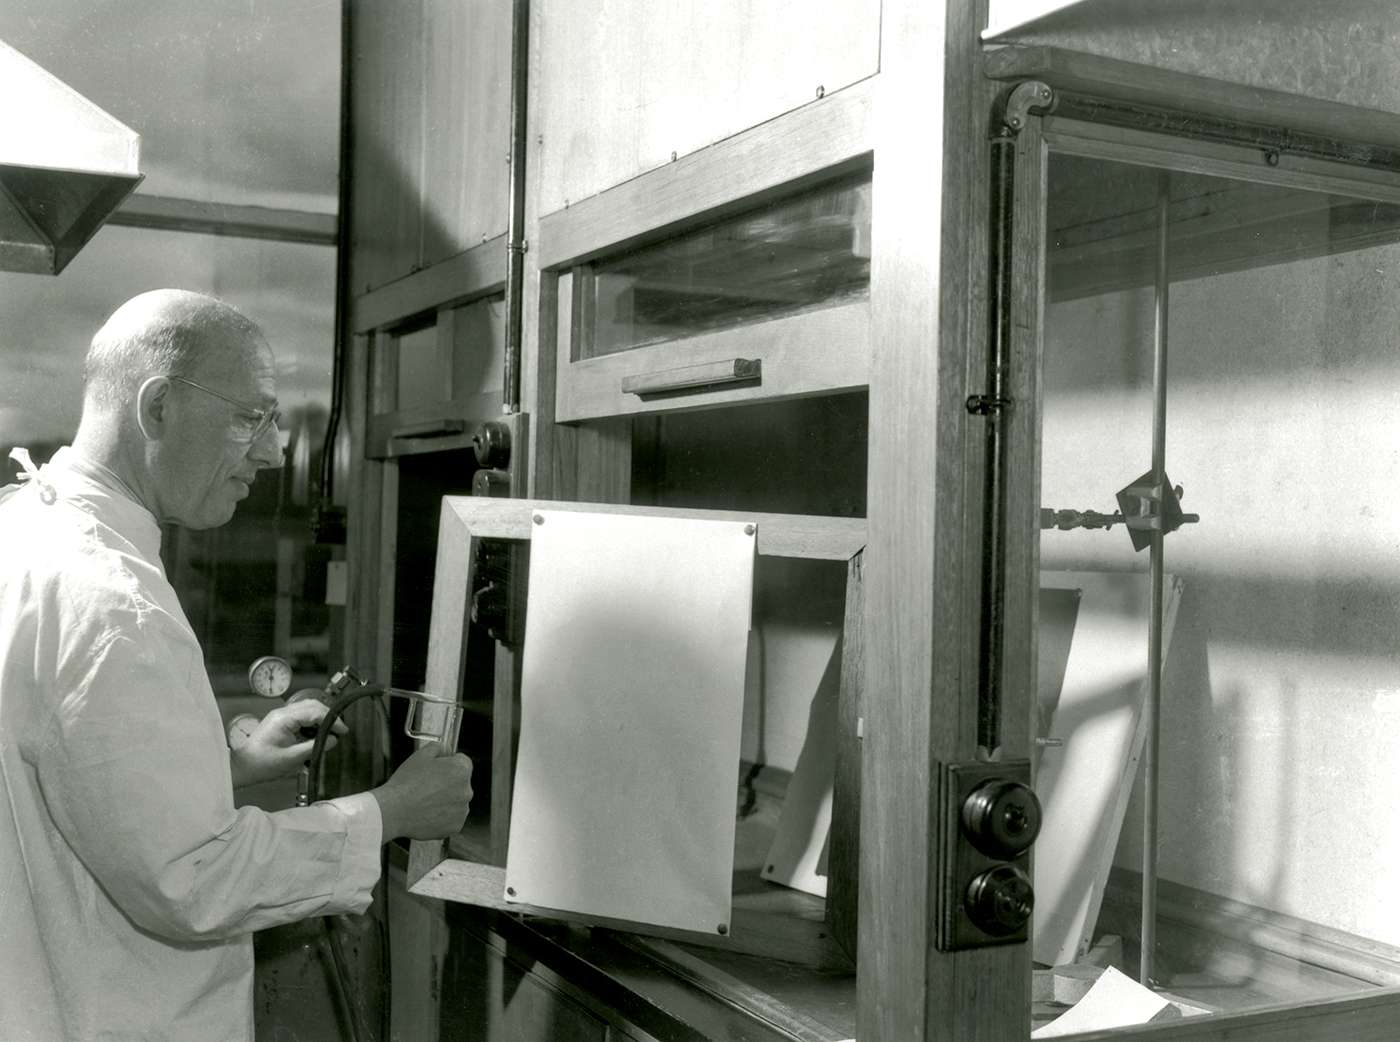 Alfred Gottschalk standing in the lab, spraying a paper chromatogram with dye as part of an experiment.